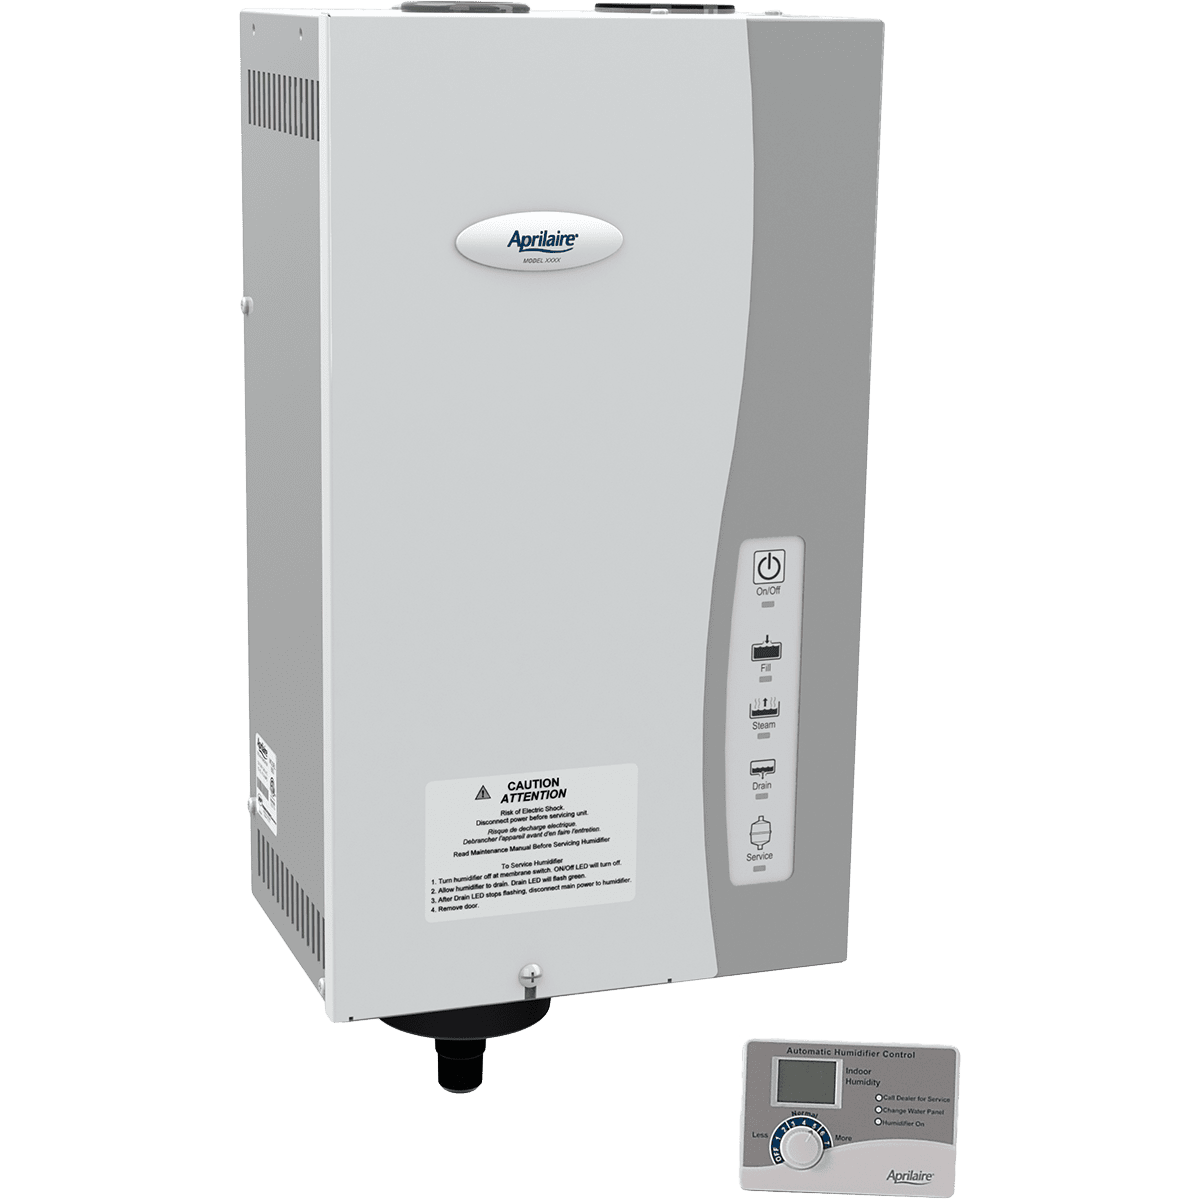 #304A61 Aprilaire Model 801 Modulating Steam Humidifiers Sylvane 2017 13472 Portable Air Conditioner Humidifier photo with 1200x1200 px on helpvideos.info - Air Conditioners, Air Coolers and more